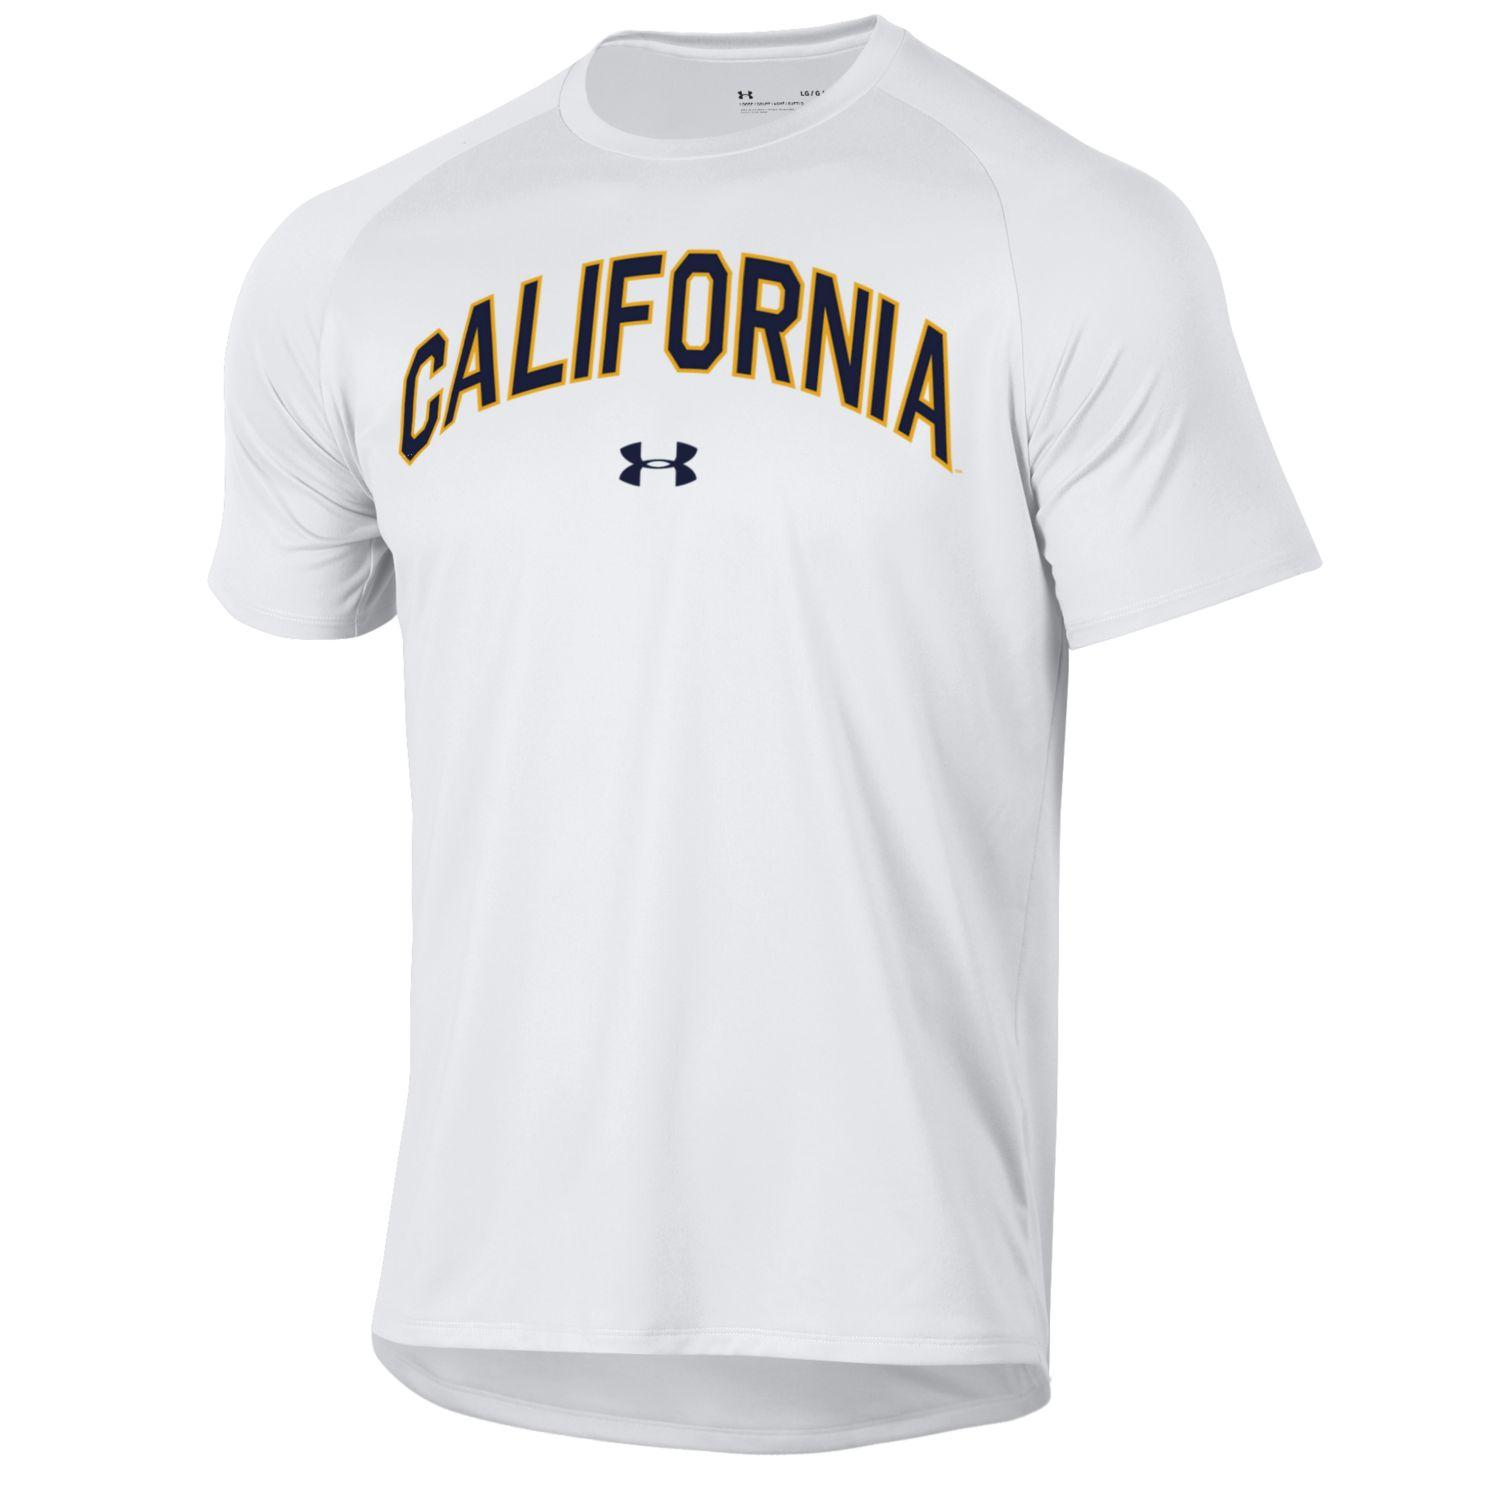 Men's SS Tech Tee 2.0 by Under Armour California